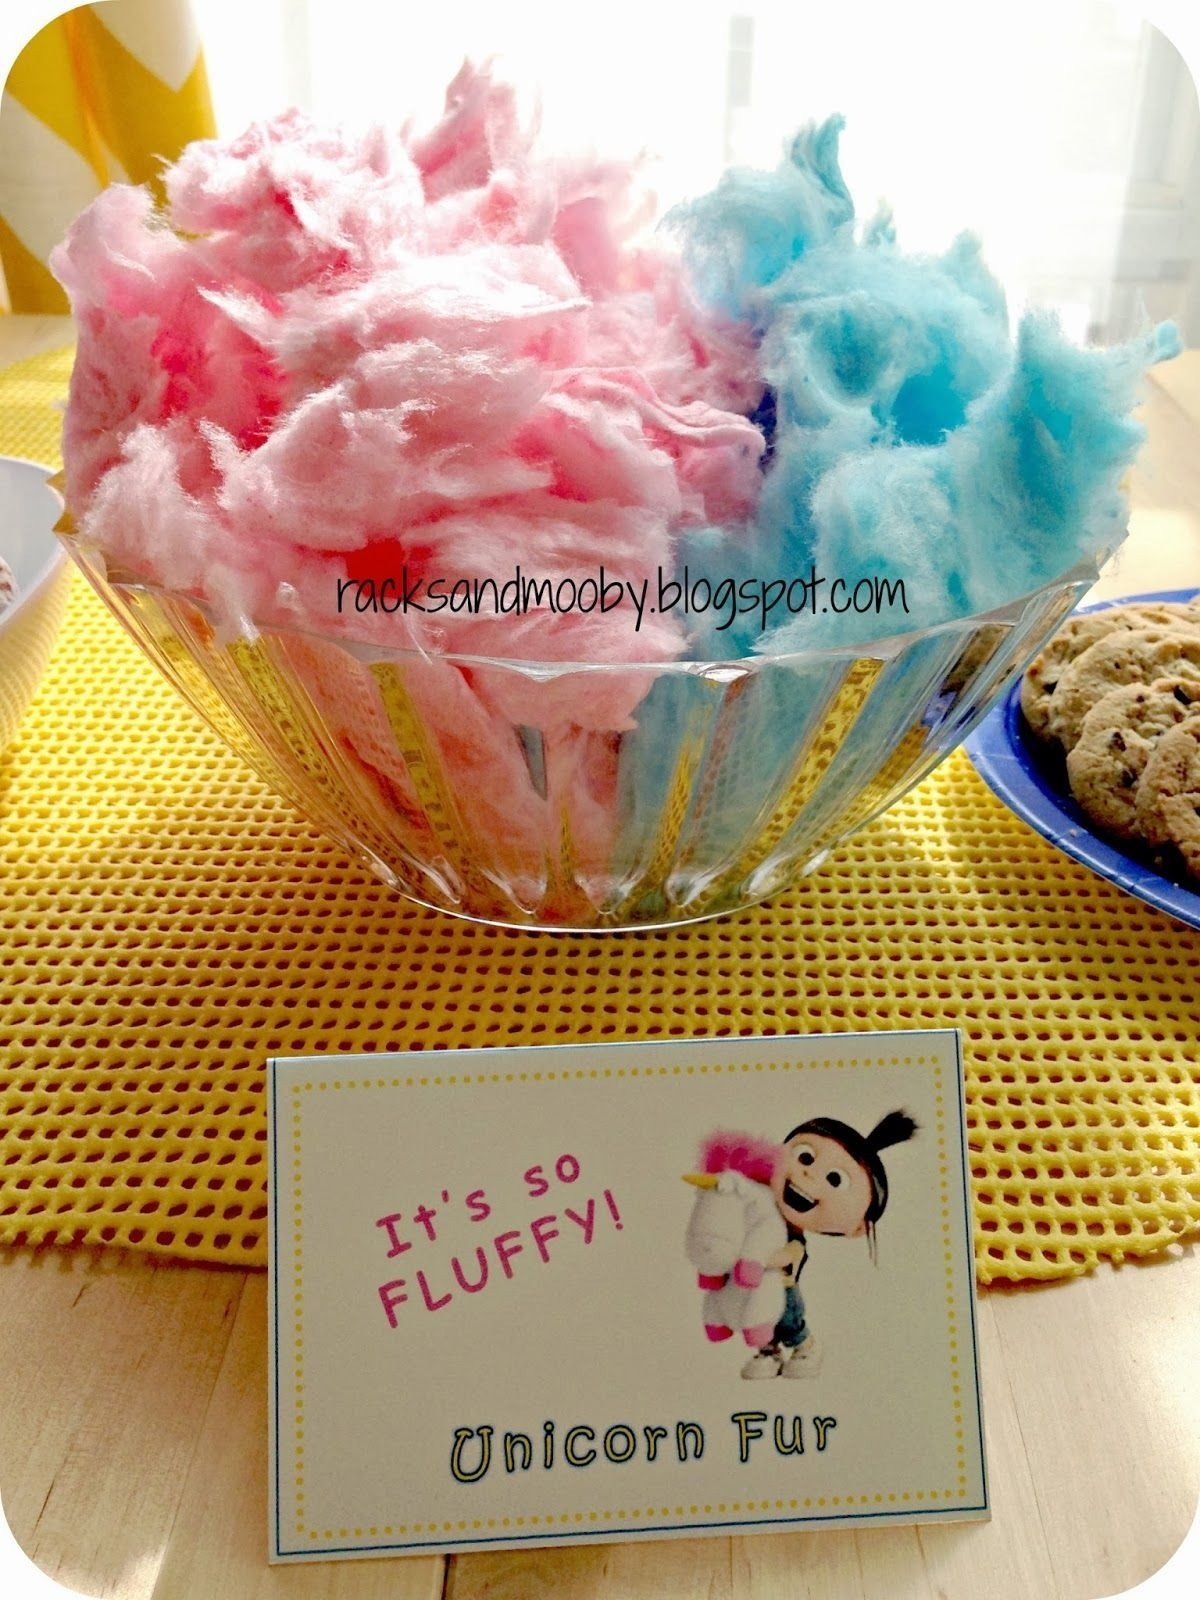 10 Stylish Despicable Me Party Food Ideas minion party snacks despicable me party fluffy unicorn fur